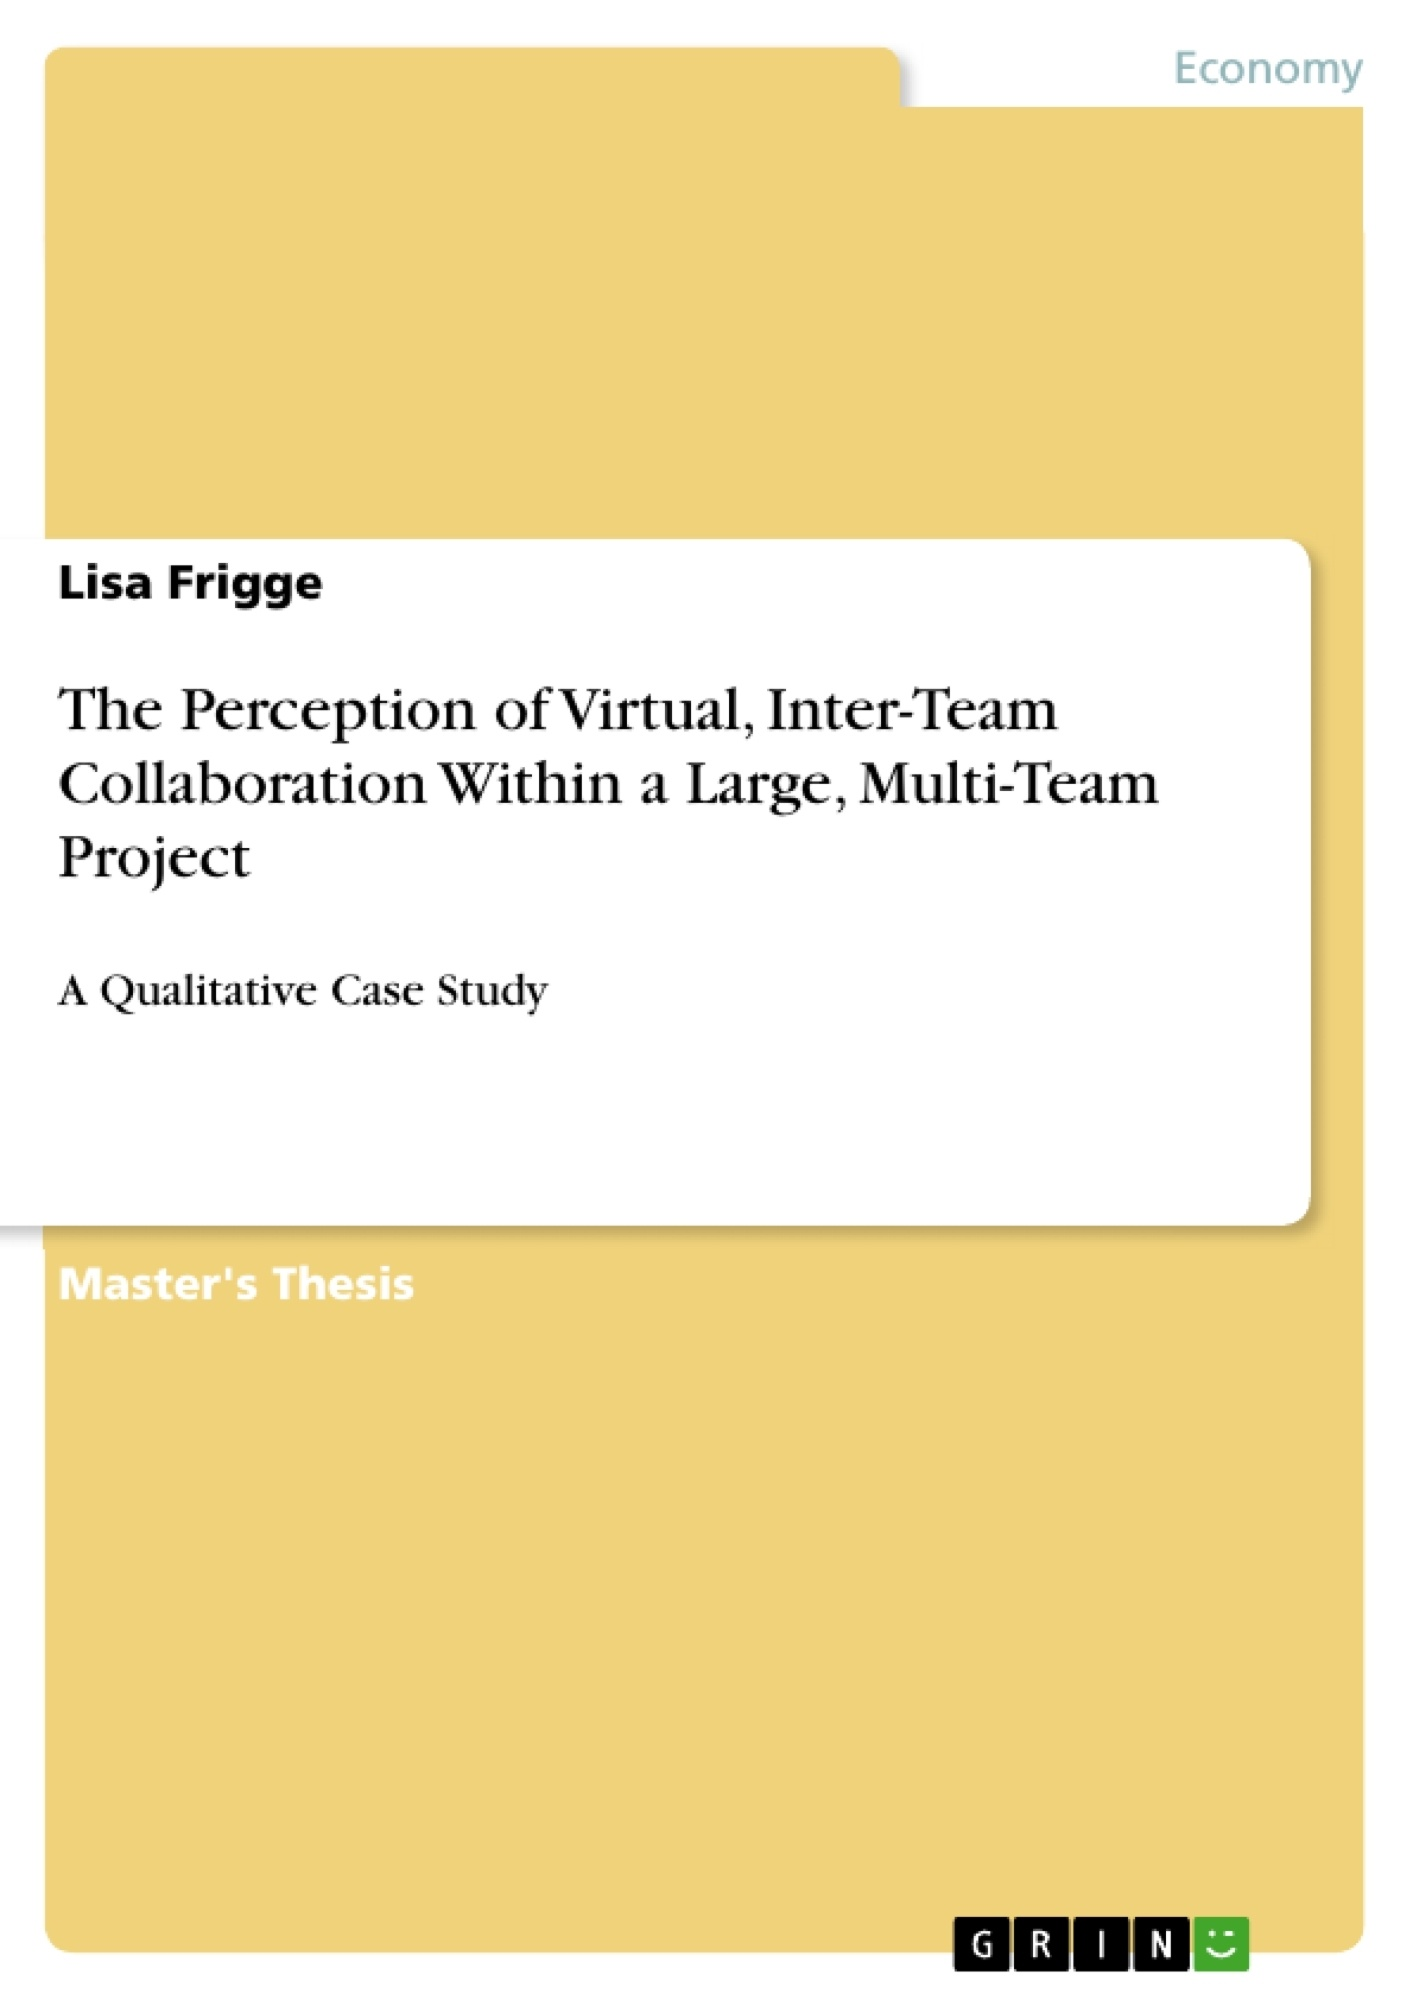 Title: The Perception of Virtual, Inter-Team Collaboration Within a Large, Multi-Team Project. A Qualitative Case Study